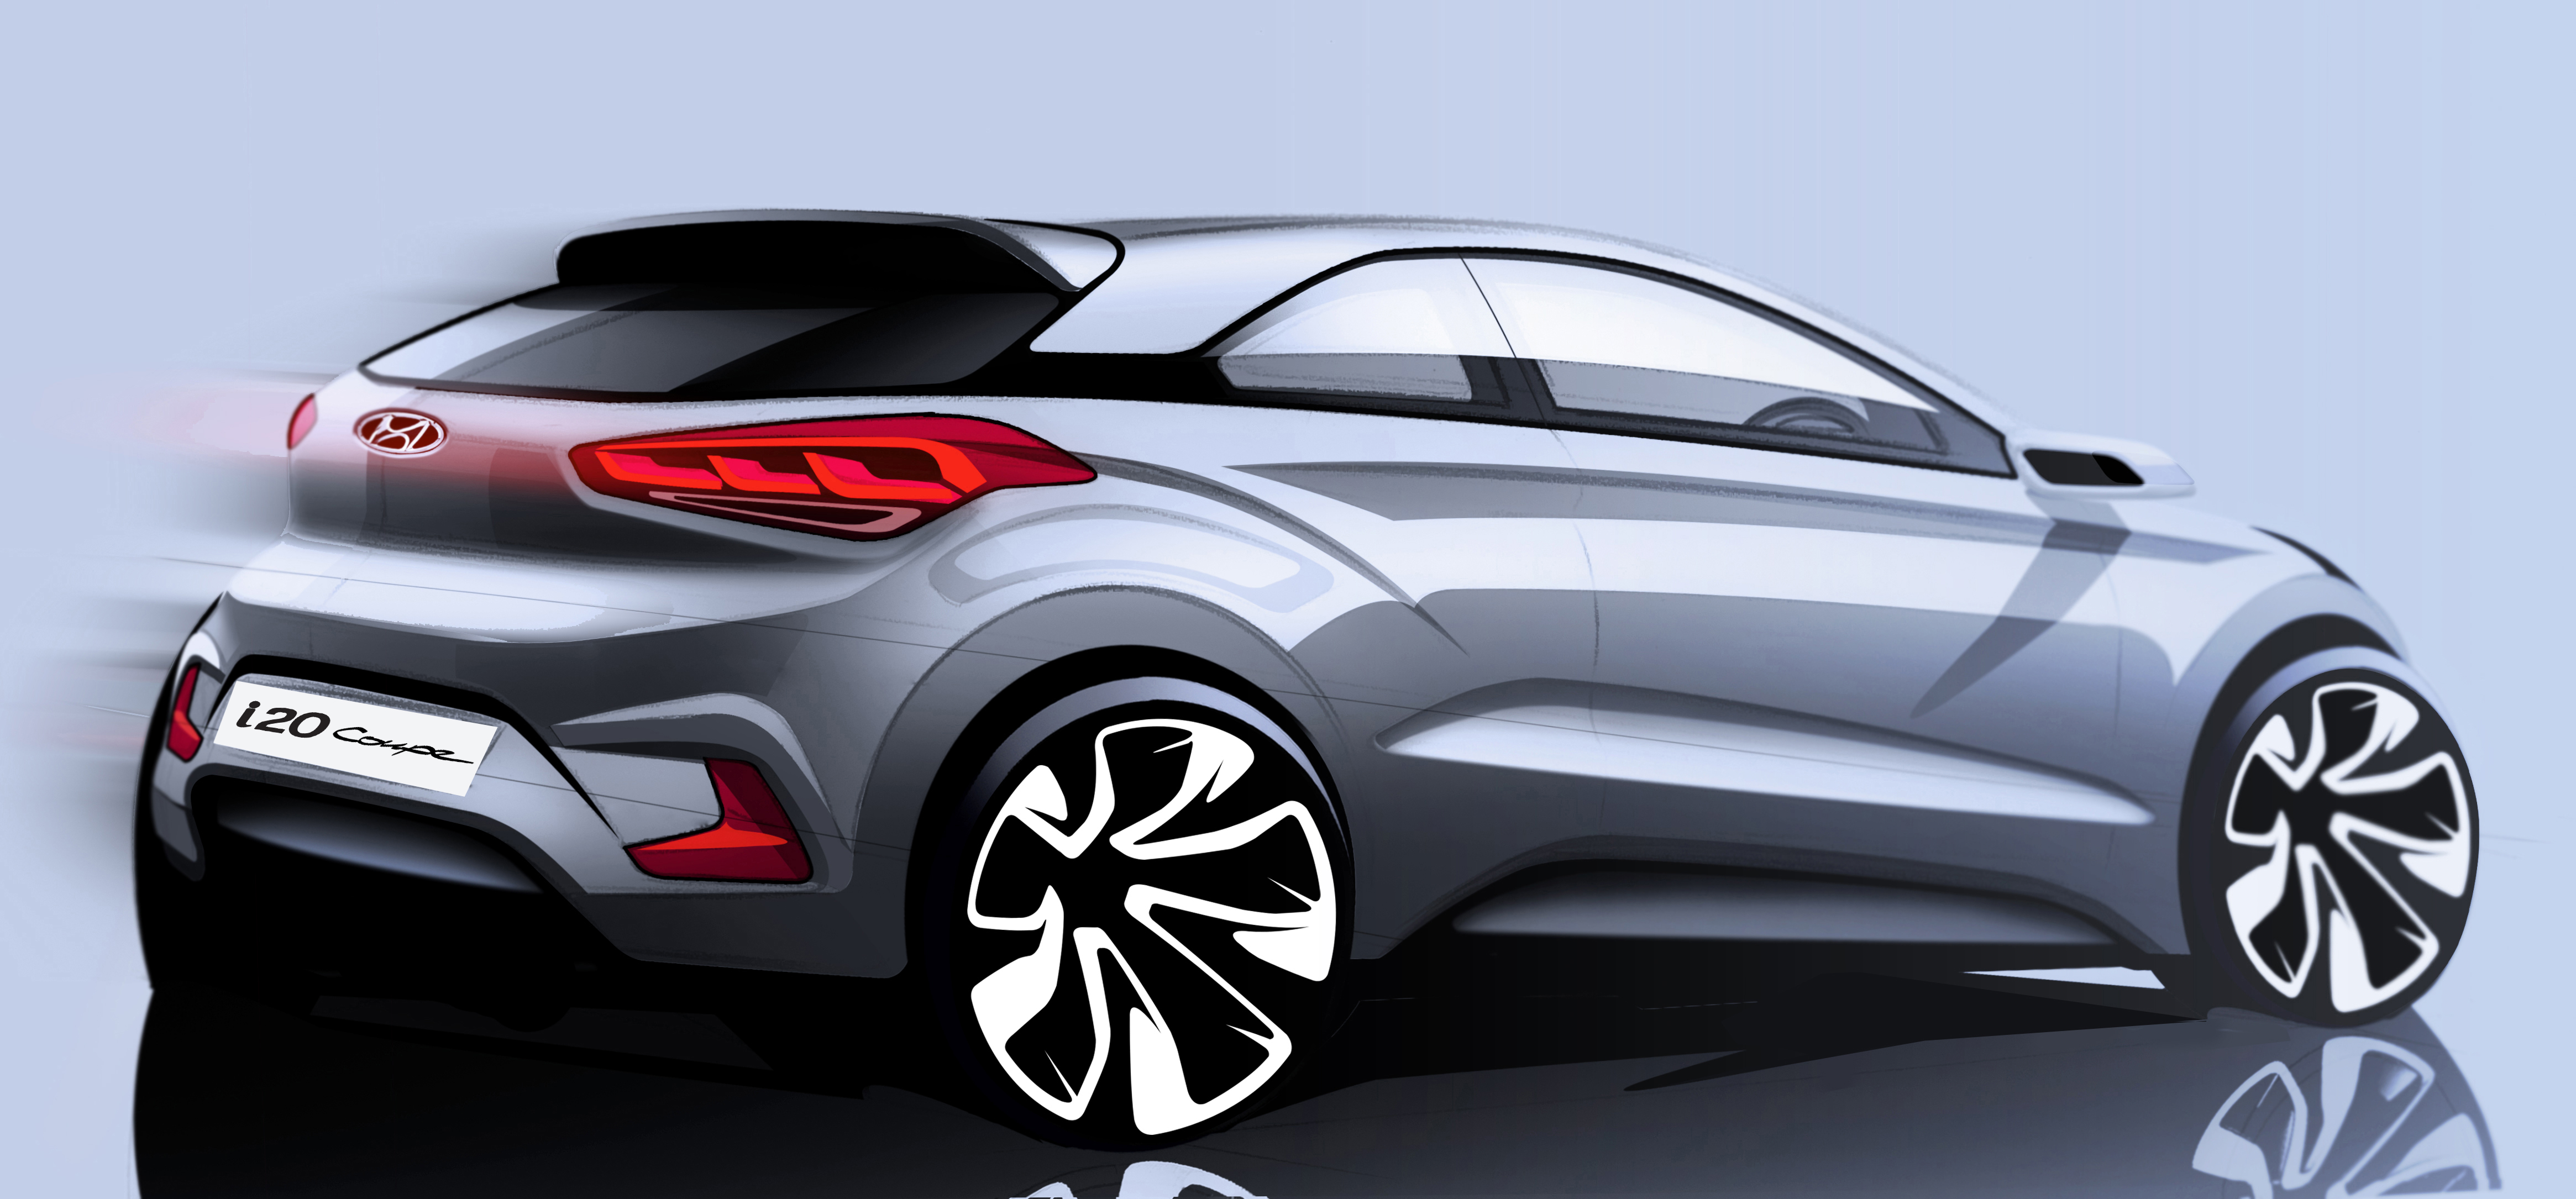 racy hyundai i20 coupe revealed business car manager. Black Bedroom Furniture Sets. Home Design Ideas